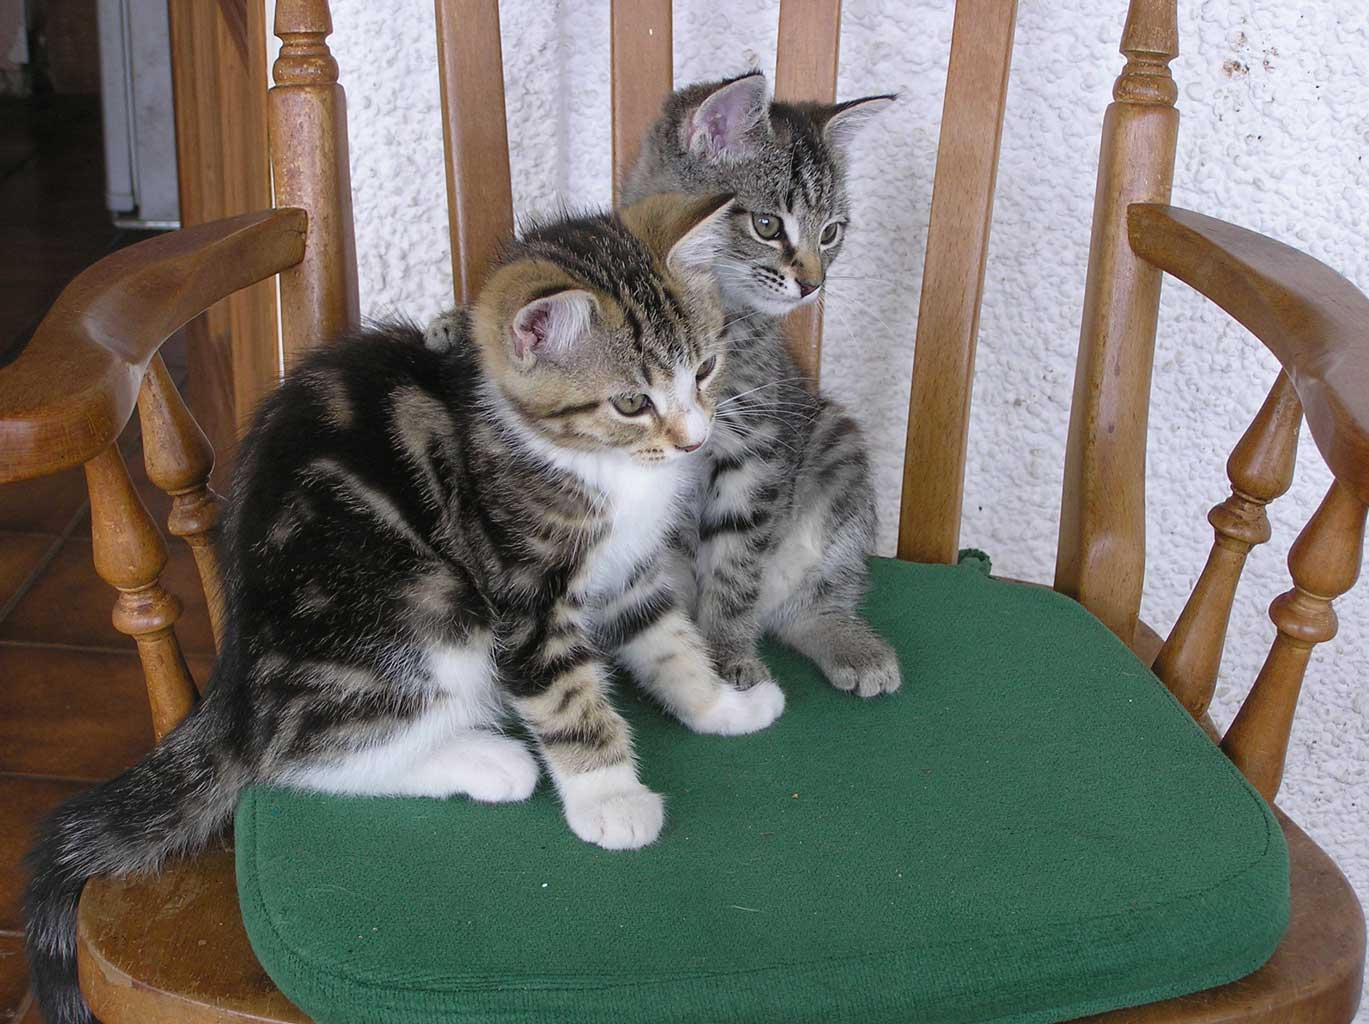 Lizzie and Monk (as kittens)